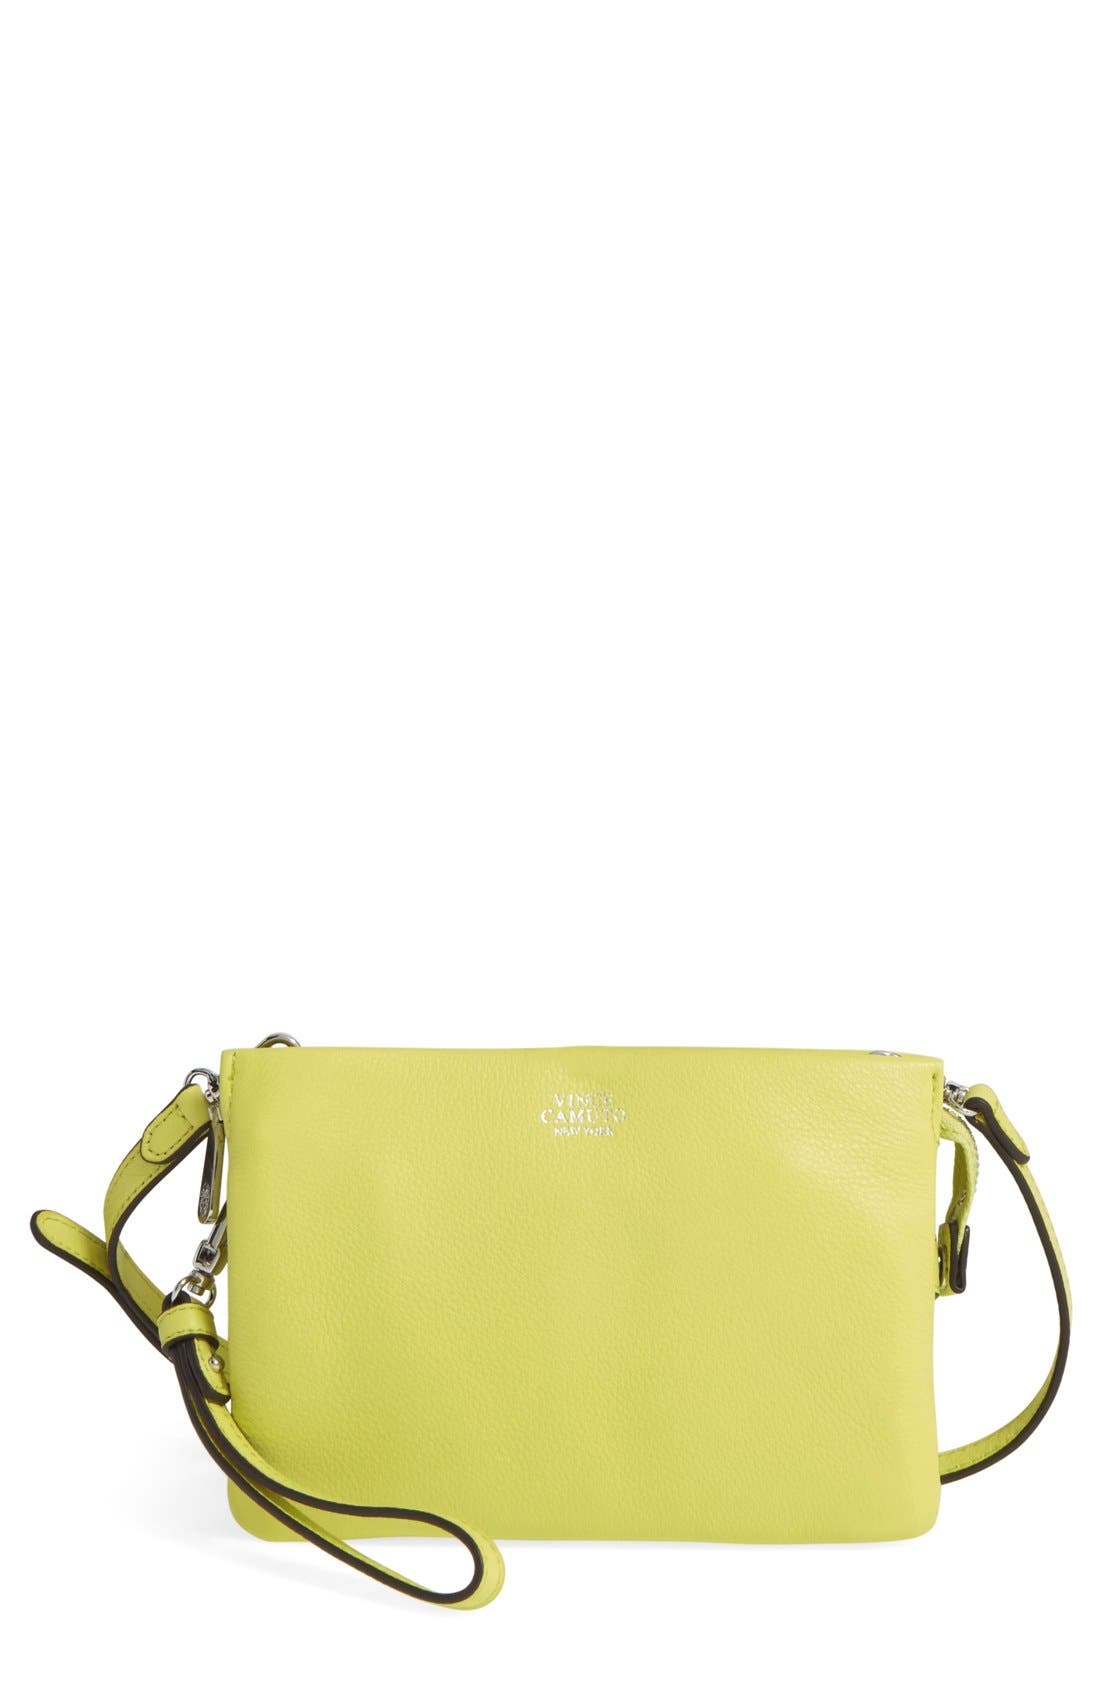 'Cami' Leather Crossbody Bag,                             Main thumbnail 28, color,